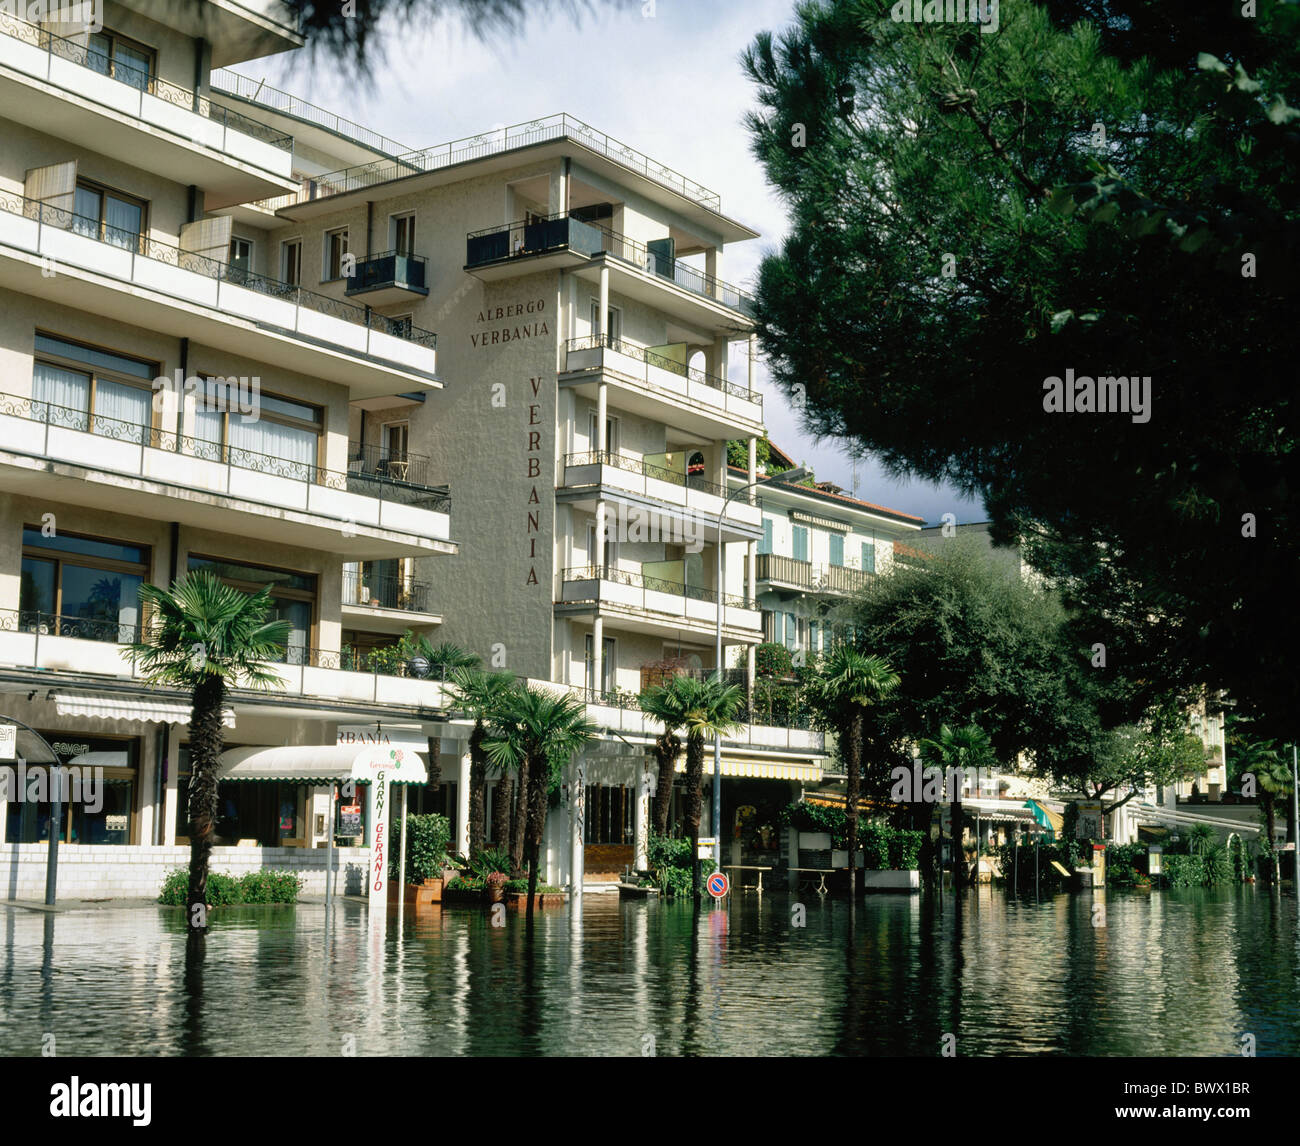 houses homes autumn in 1993 high water Lucerne Switzerland Europe street Ticino floods flood - Stock Image